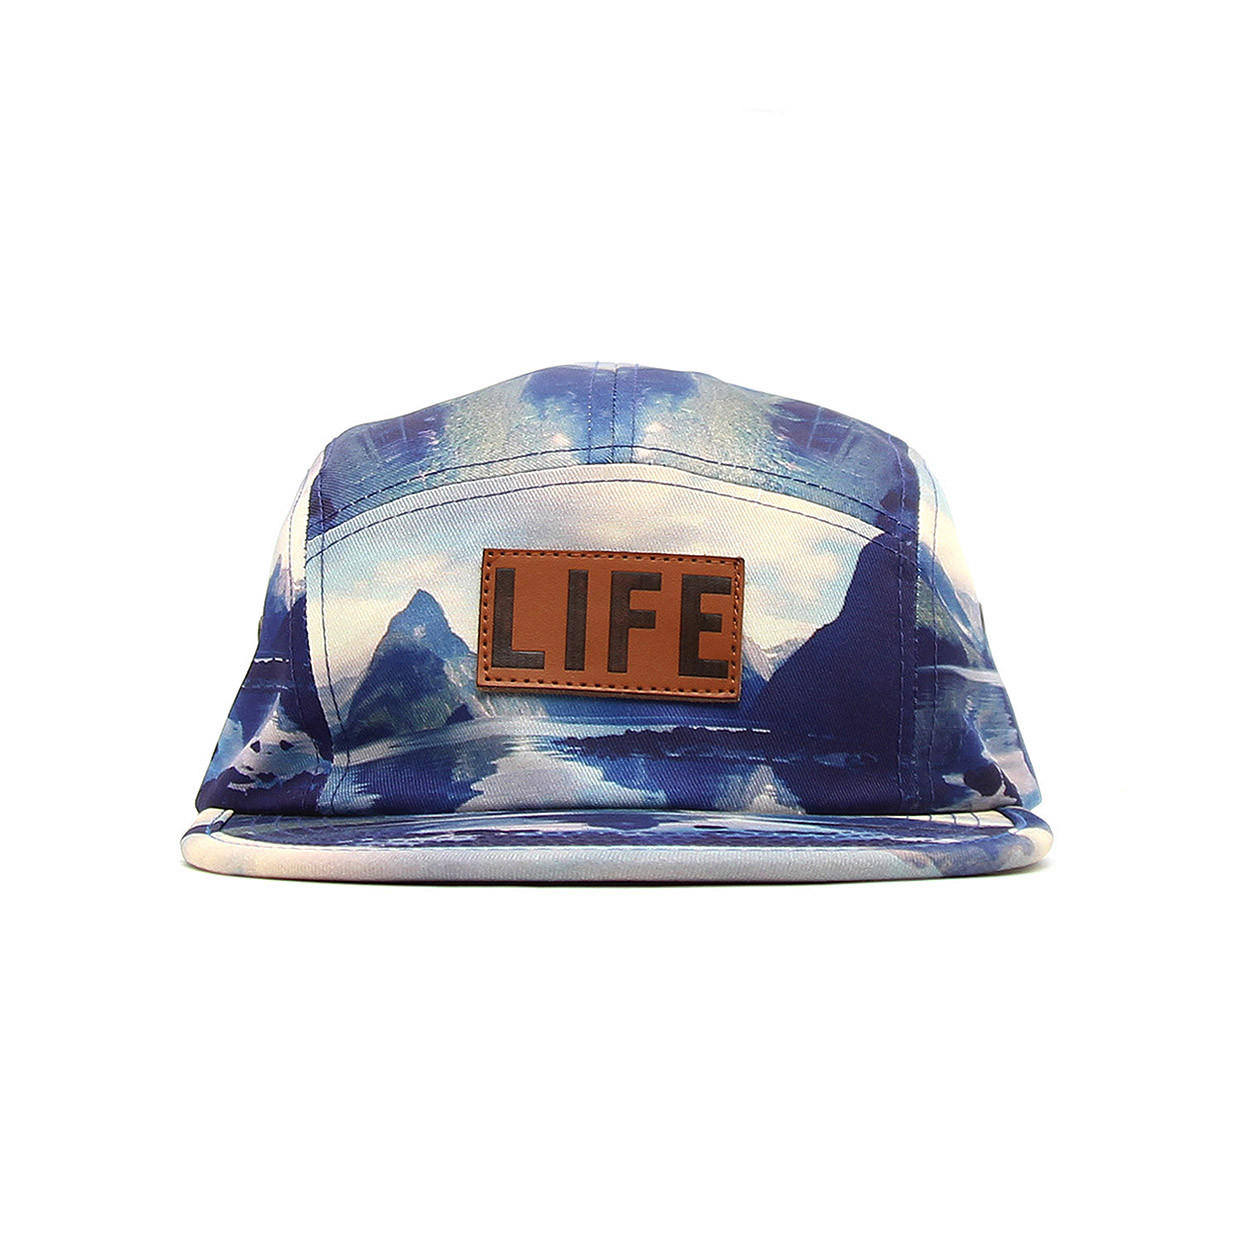 Altru apparel life reflections cap from altru apparel socks for Altruy decoration sa